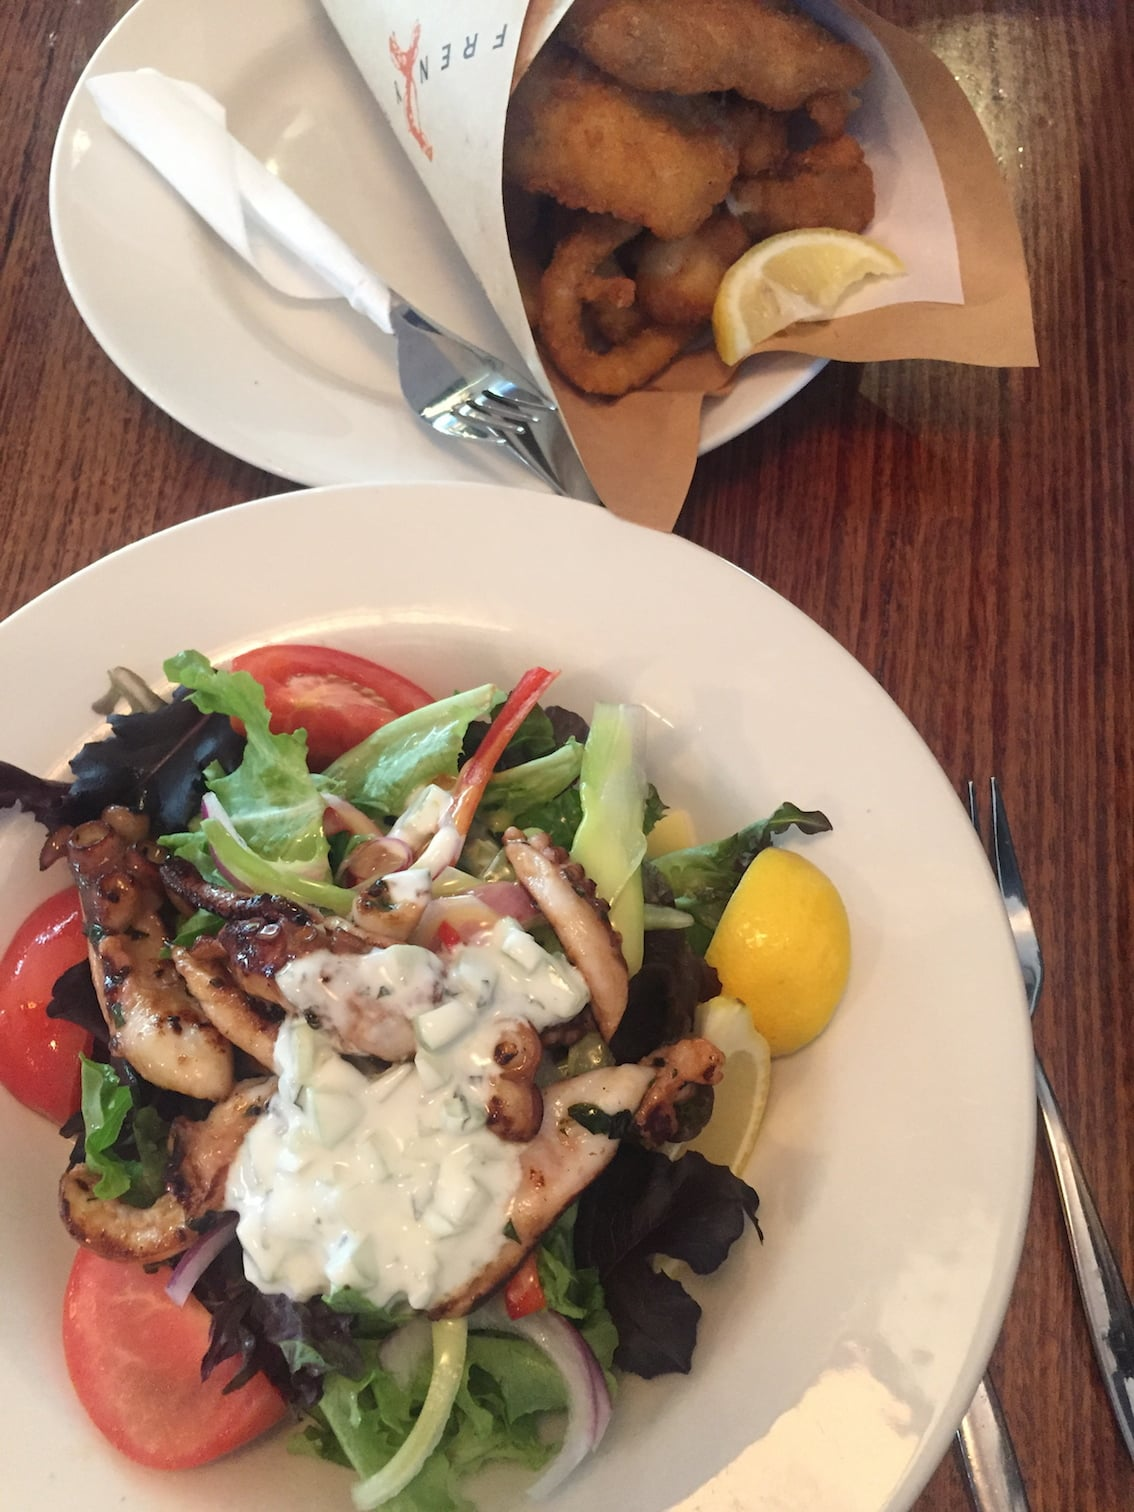 Octopus salad and fish and chips for dinner, at Fish Frenzy in Hobart.